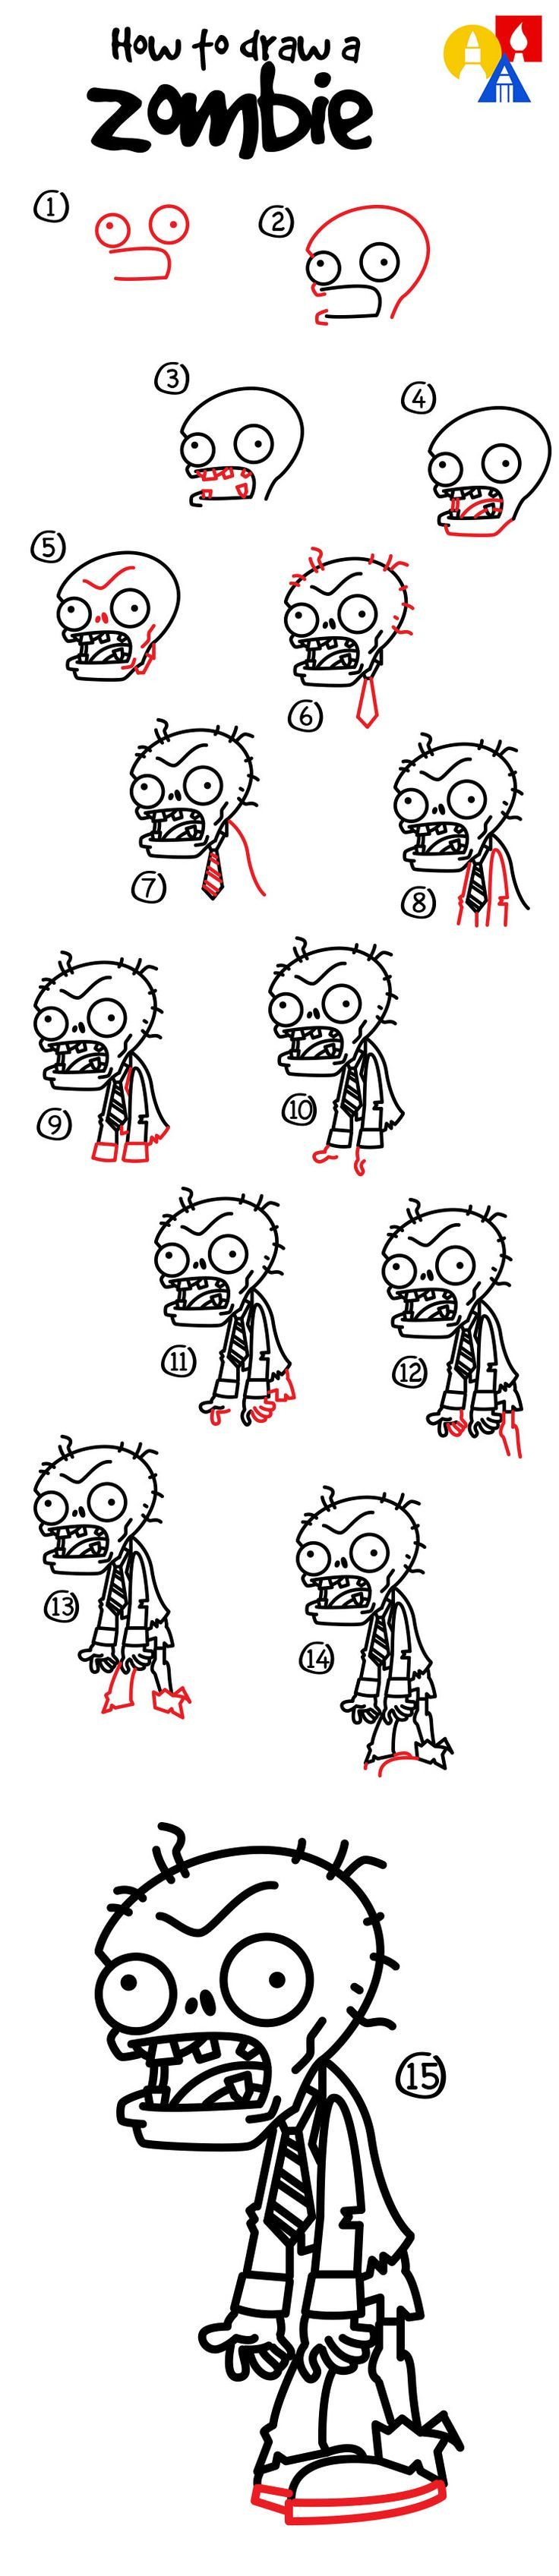 How to draw a zombie from Plants vs Zombies!: